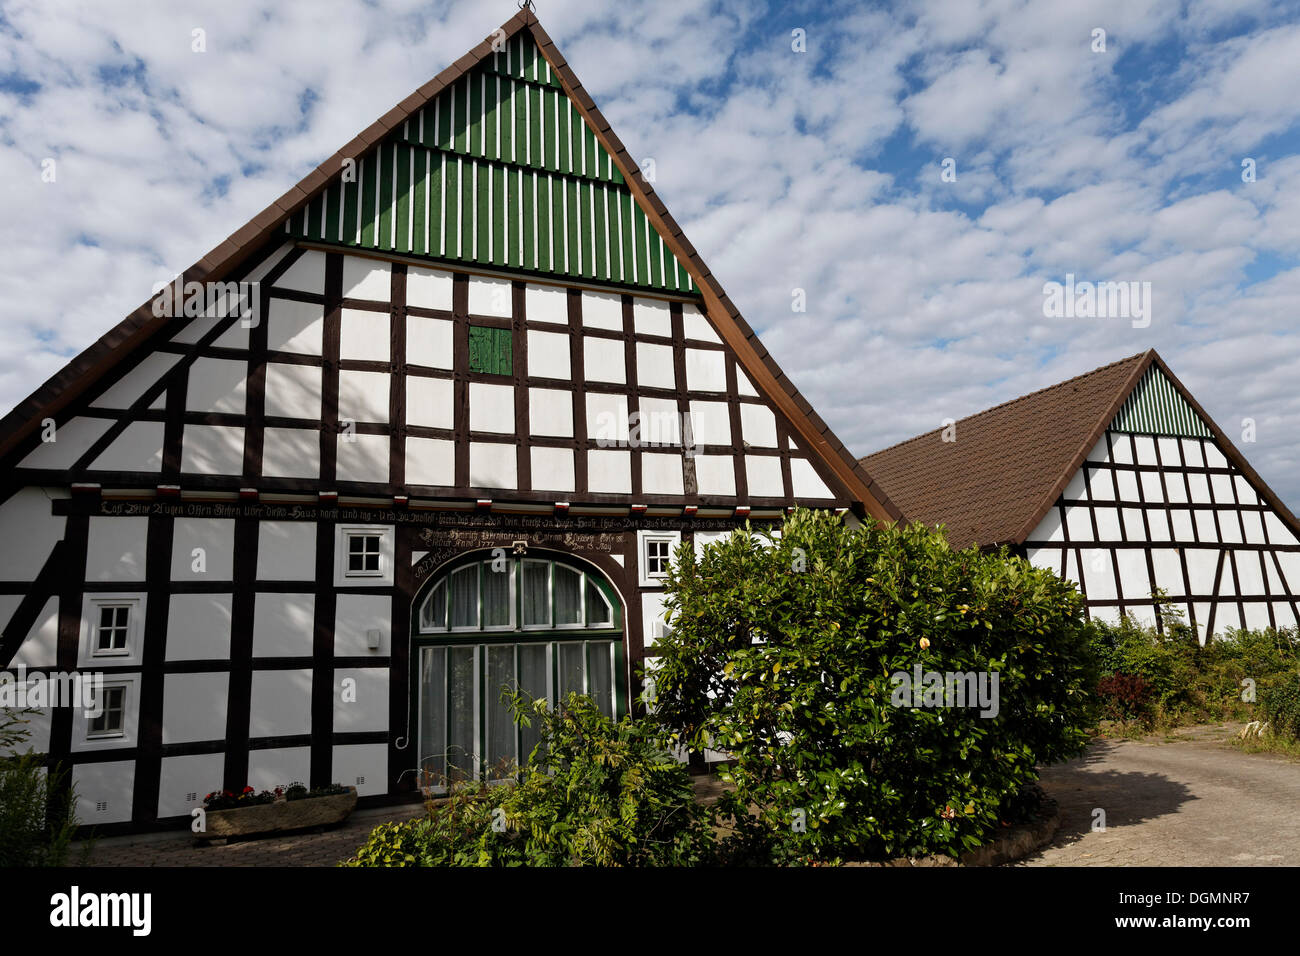 Old Lower Saxon half-timbered houses, historic centre of bad Essen, Osnabruecker Land region, Lower Saxony - Stock Image